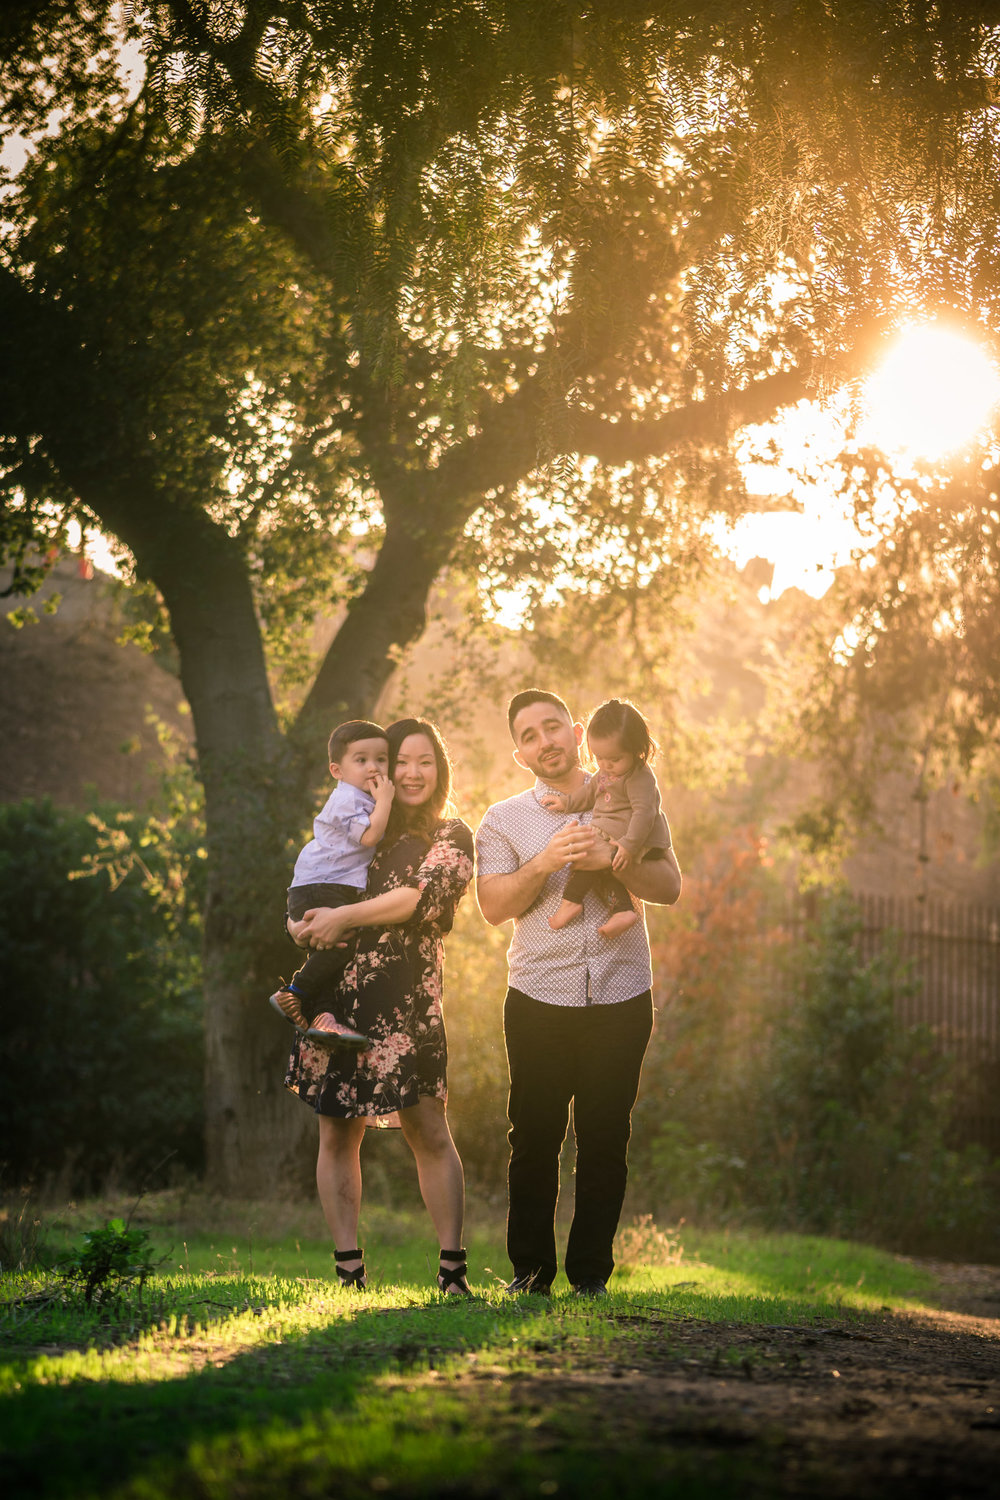 Candid family portrait of a family walking on the one Juanita Cooke trail in Fullerton during golden hour Taken by Joseph Barber photography